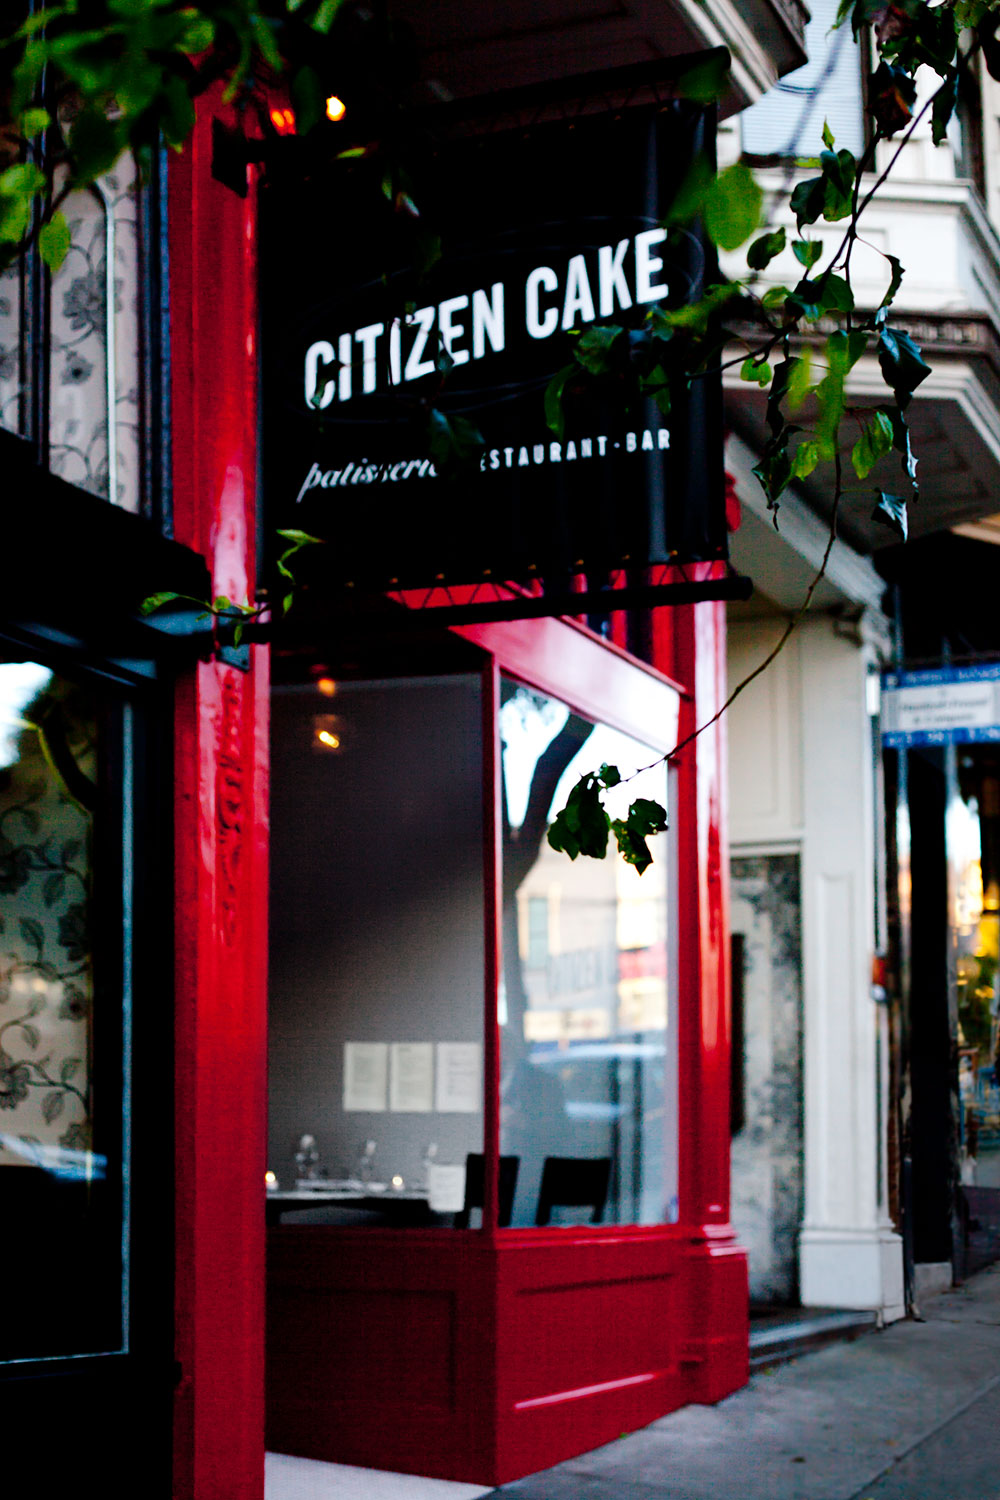 Citizen Cake